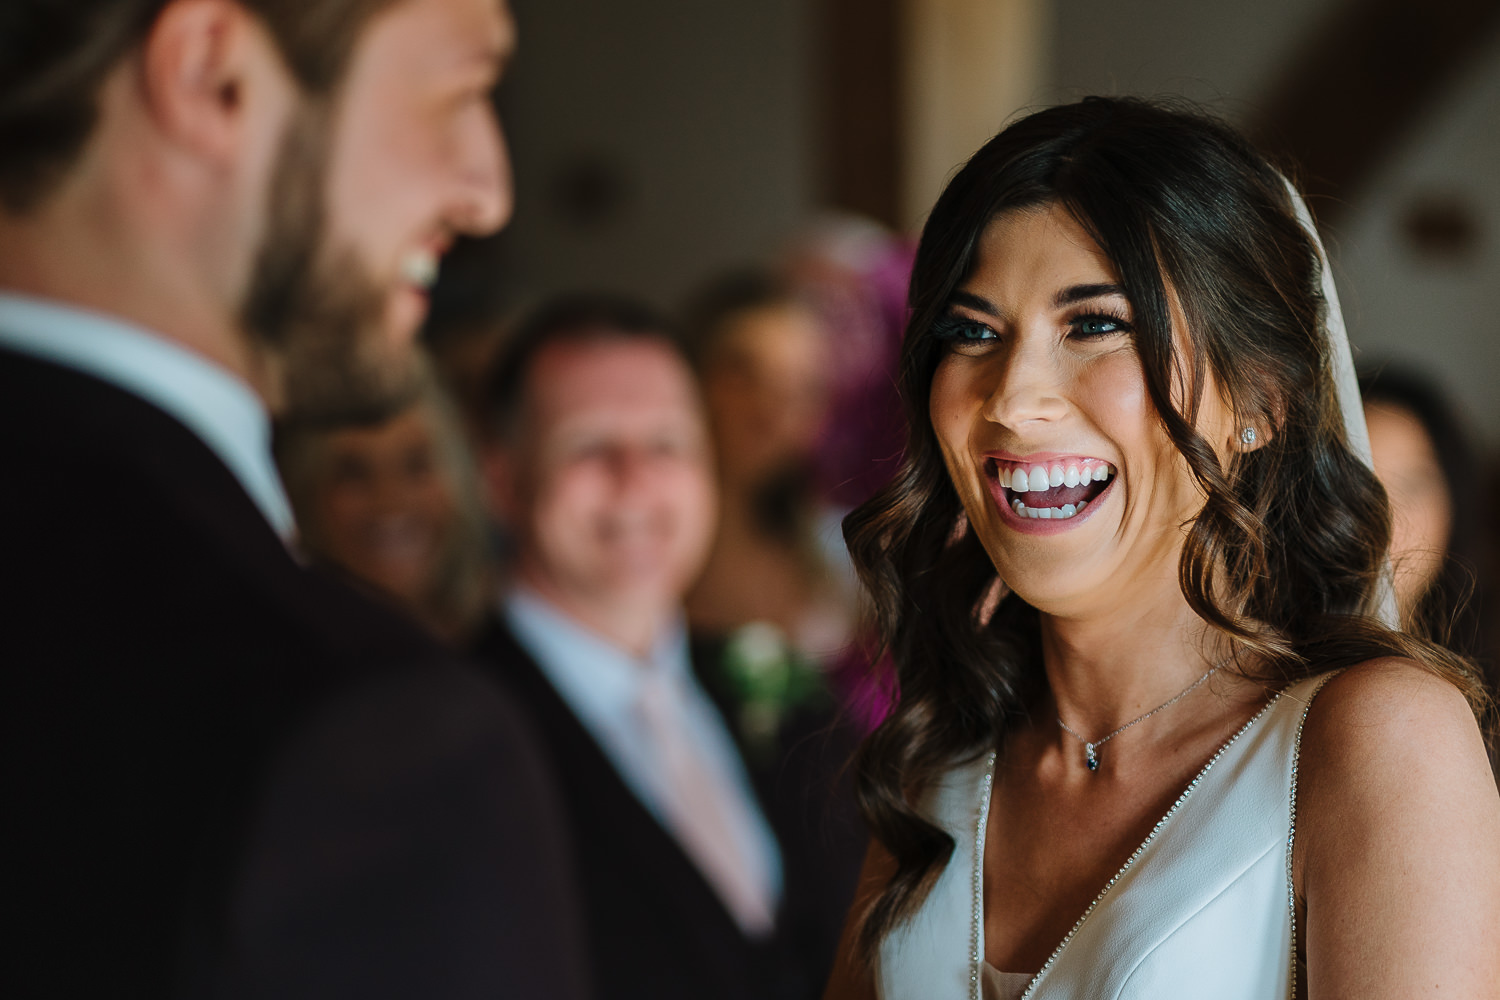 Bride laughing during the vows